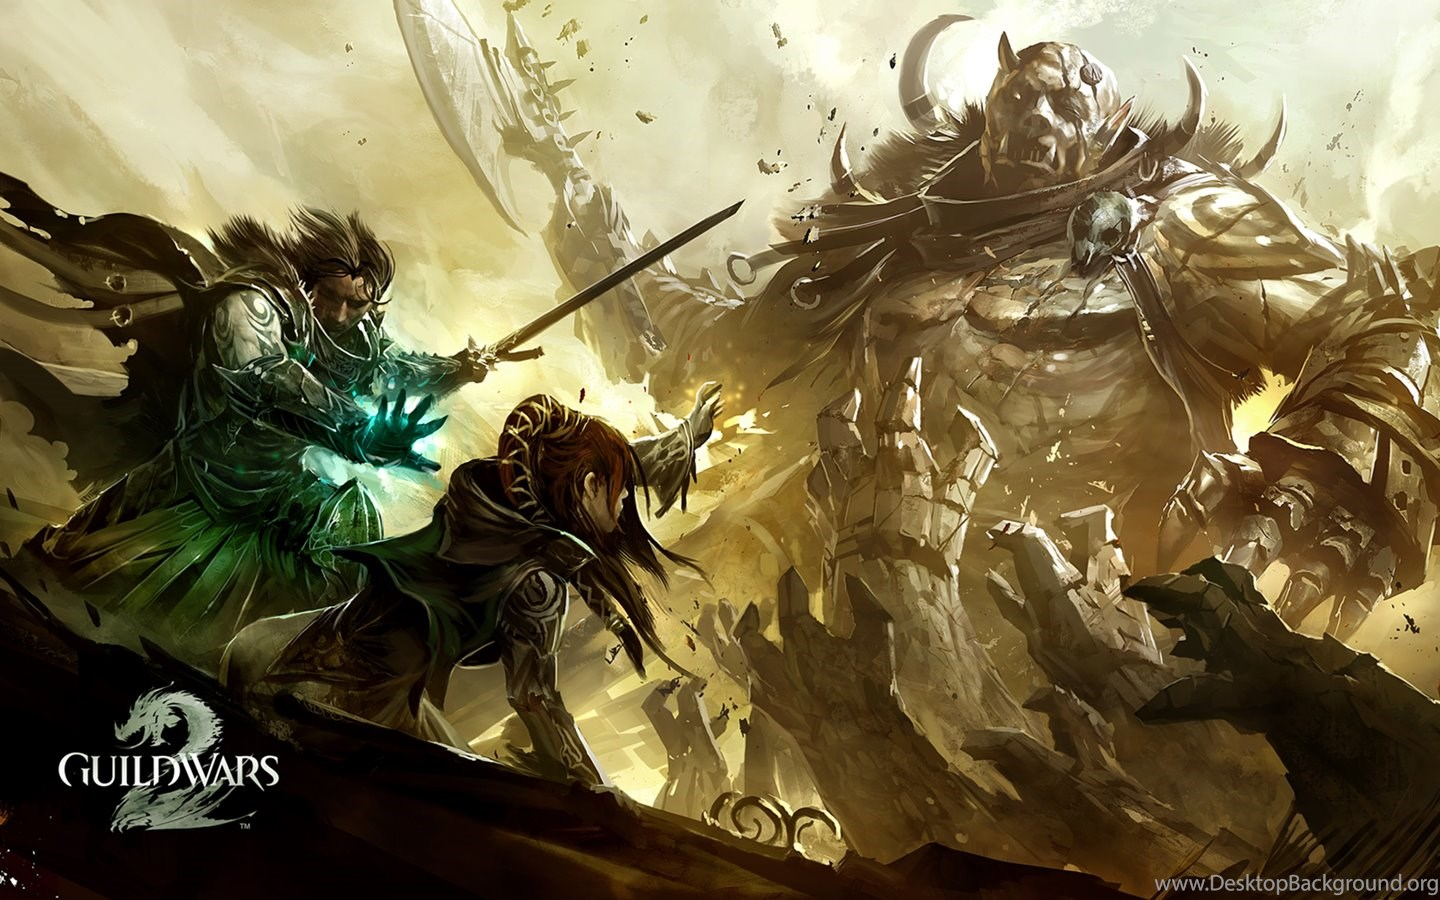 Guild Wars 2 Hd Wallpapers Desktop Background